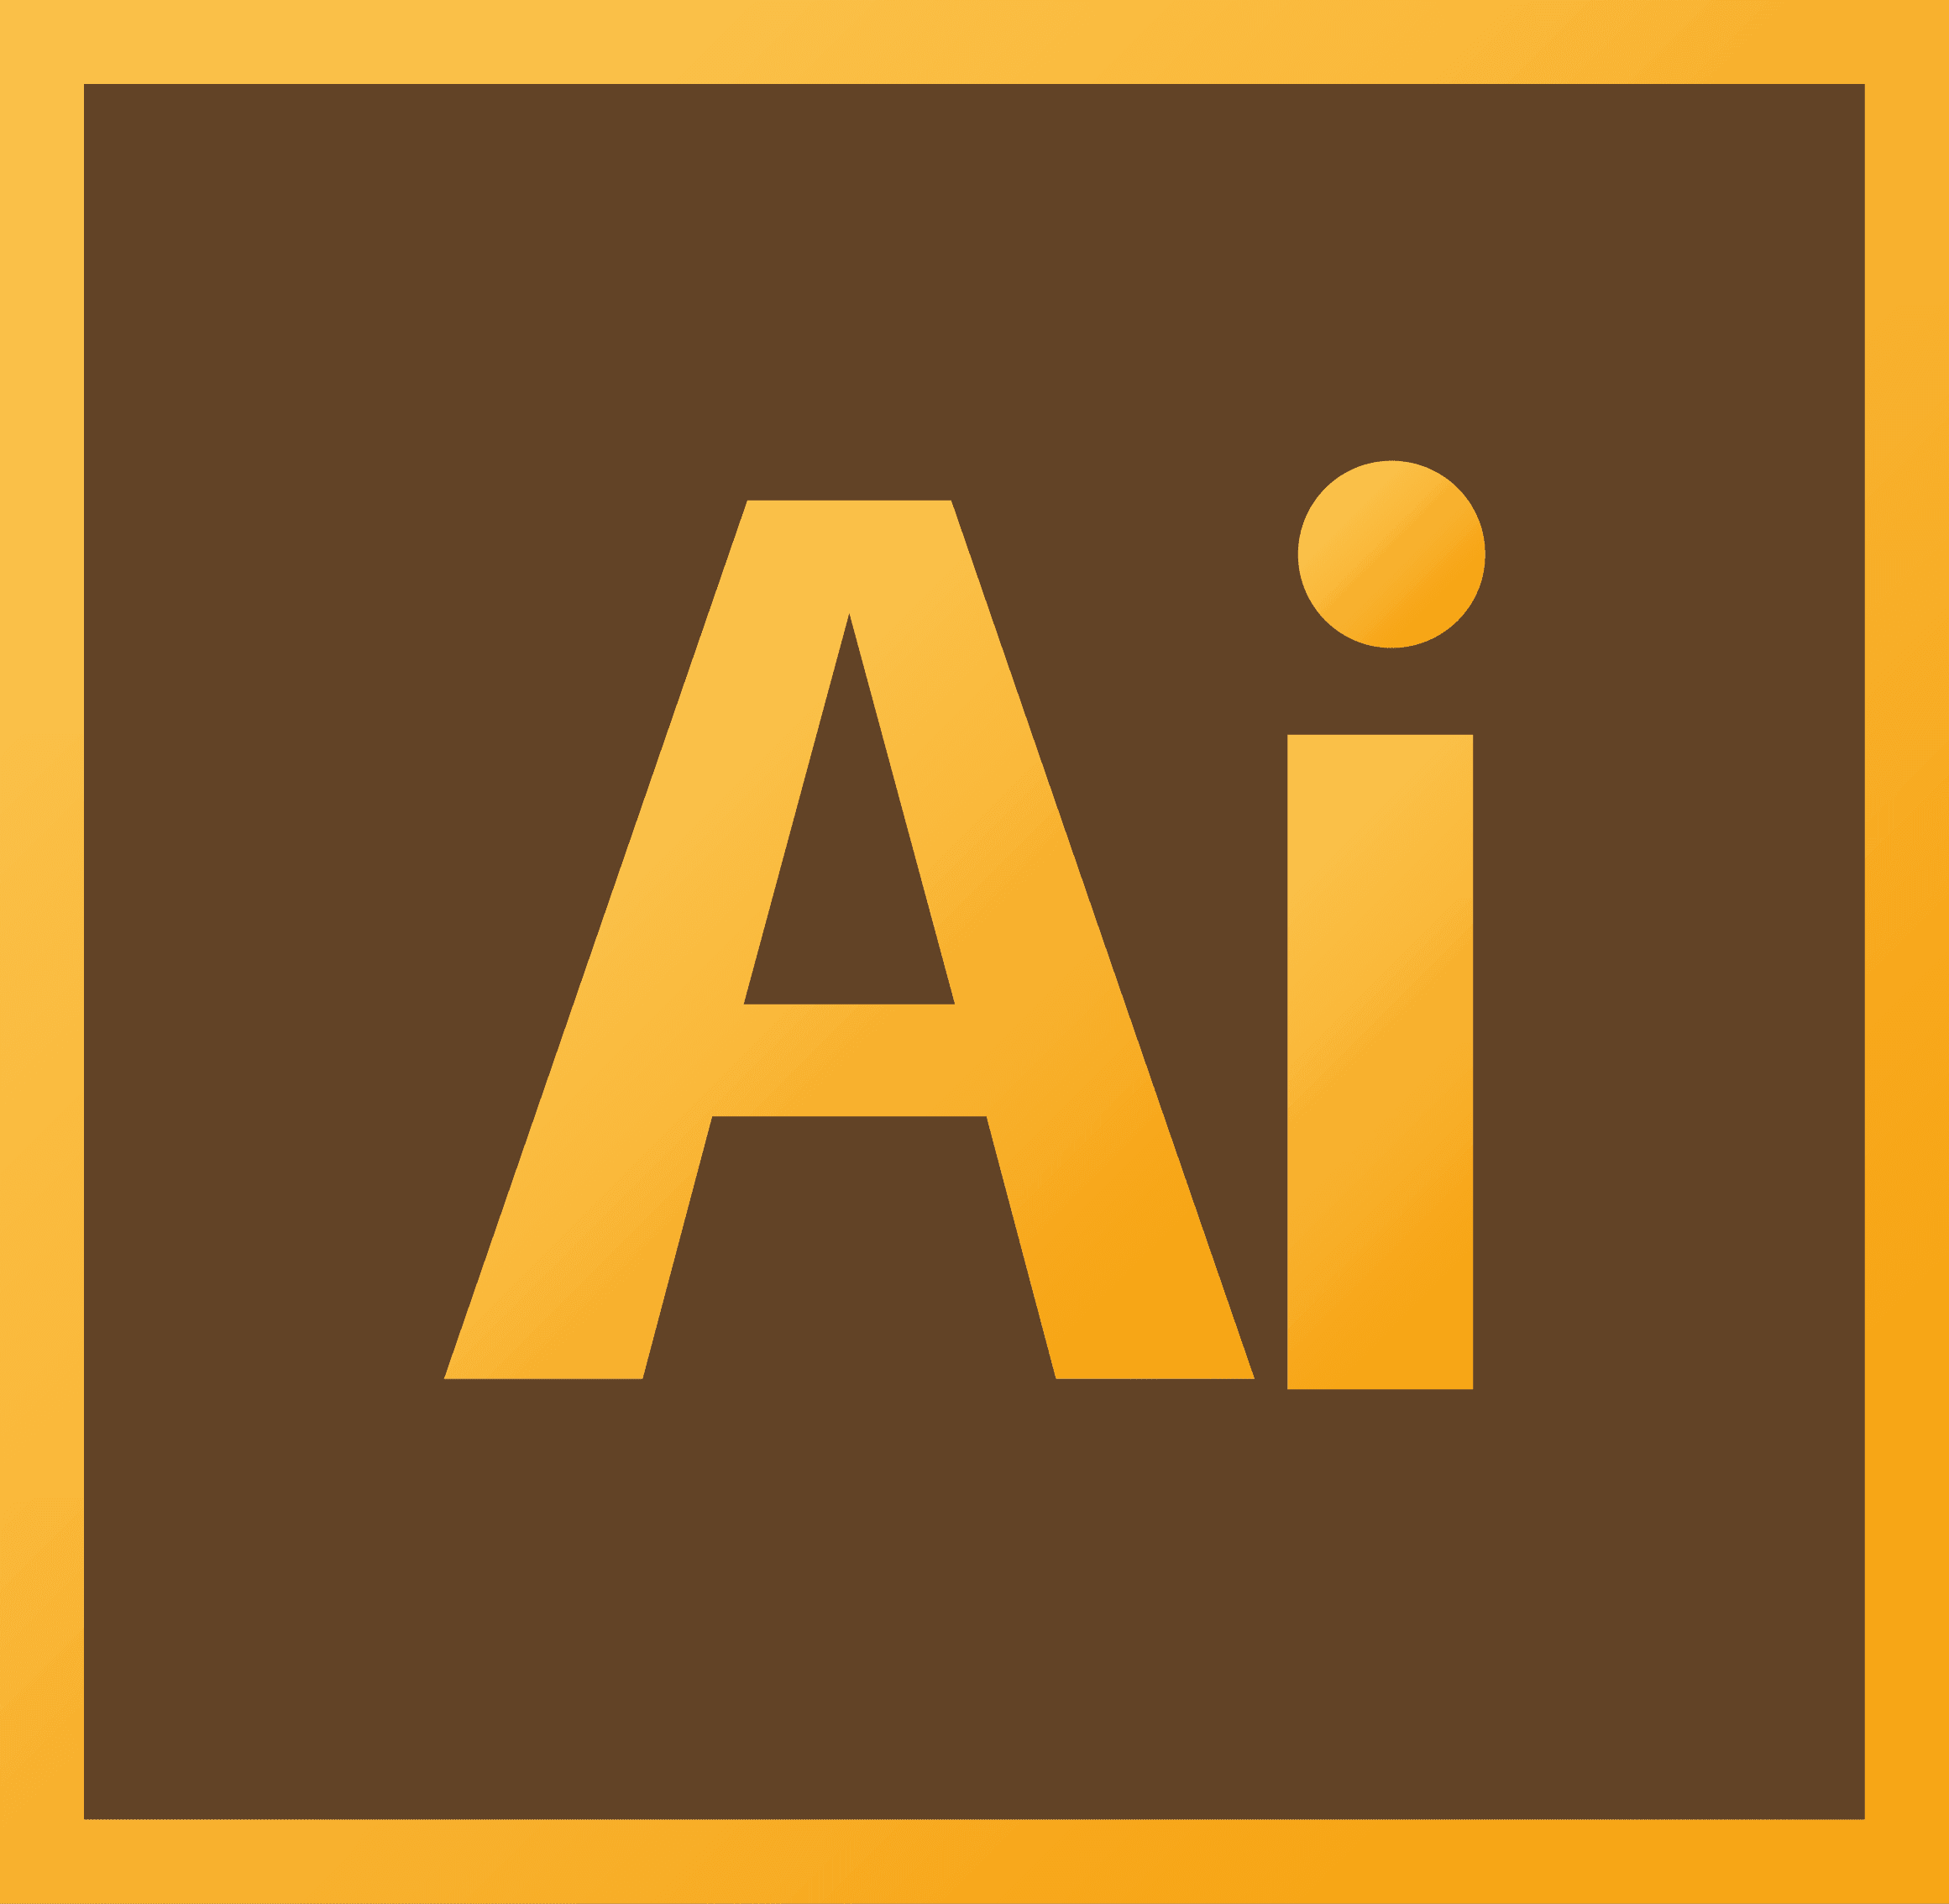 AI Logo [Adobe Illustrator] Vector EPS Free Download, Logo, Icons, Brand Emblems